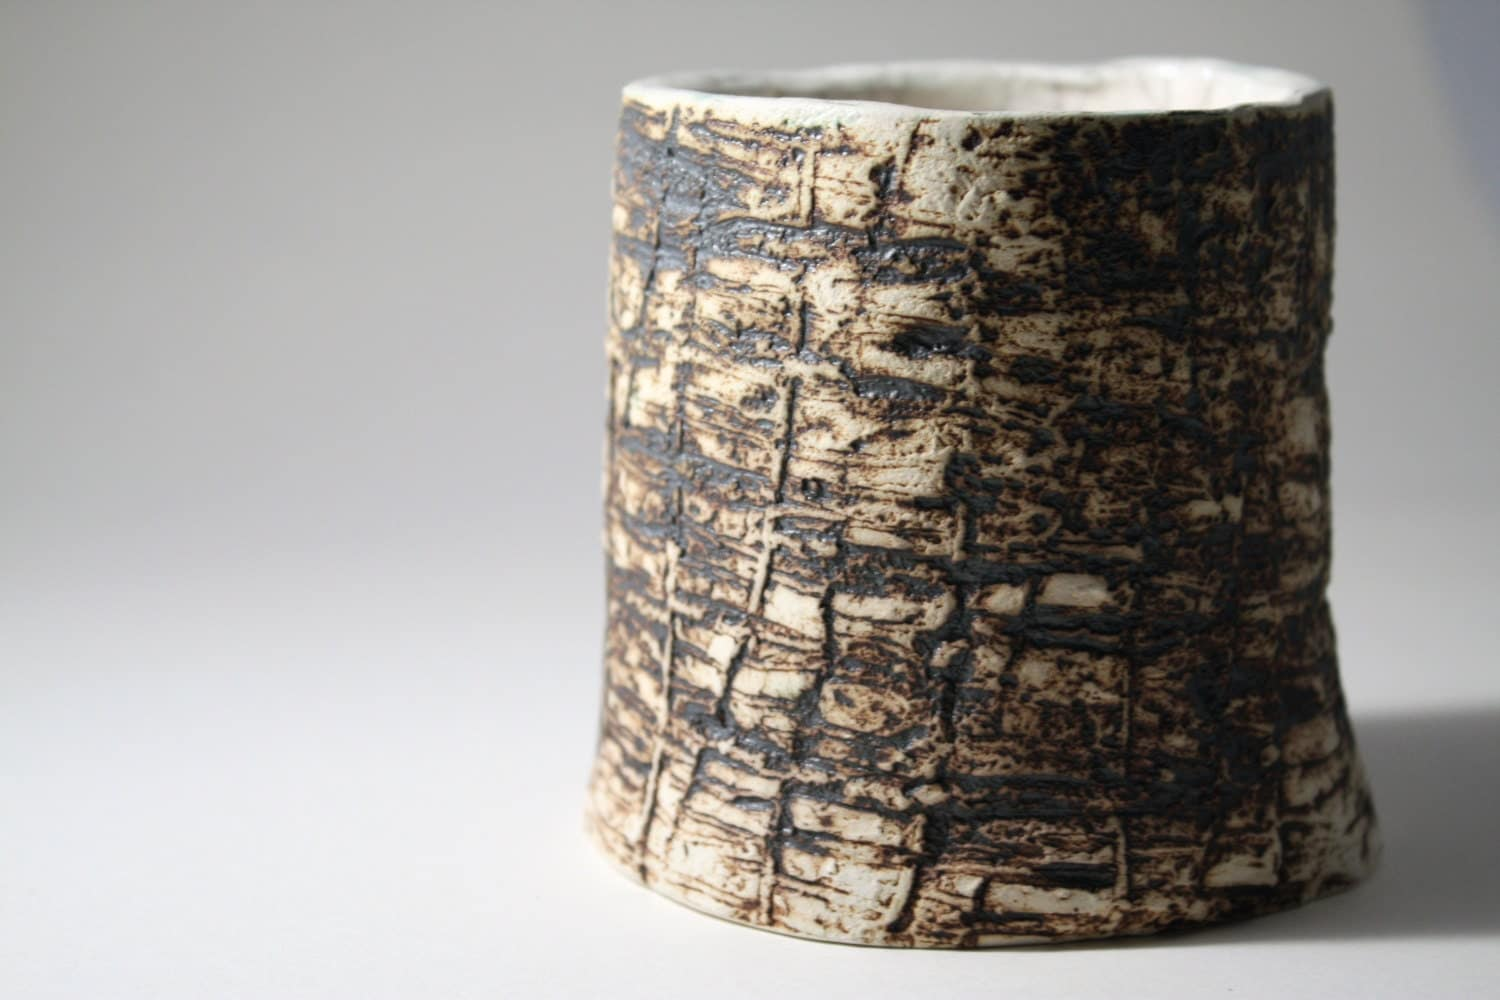 Hand built earthenware vessel with unique texture and aged look - madebymanos